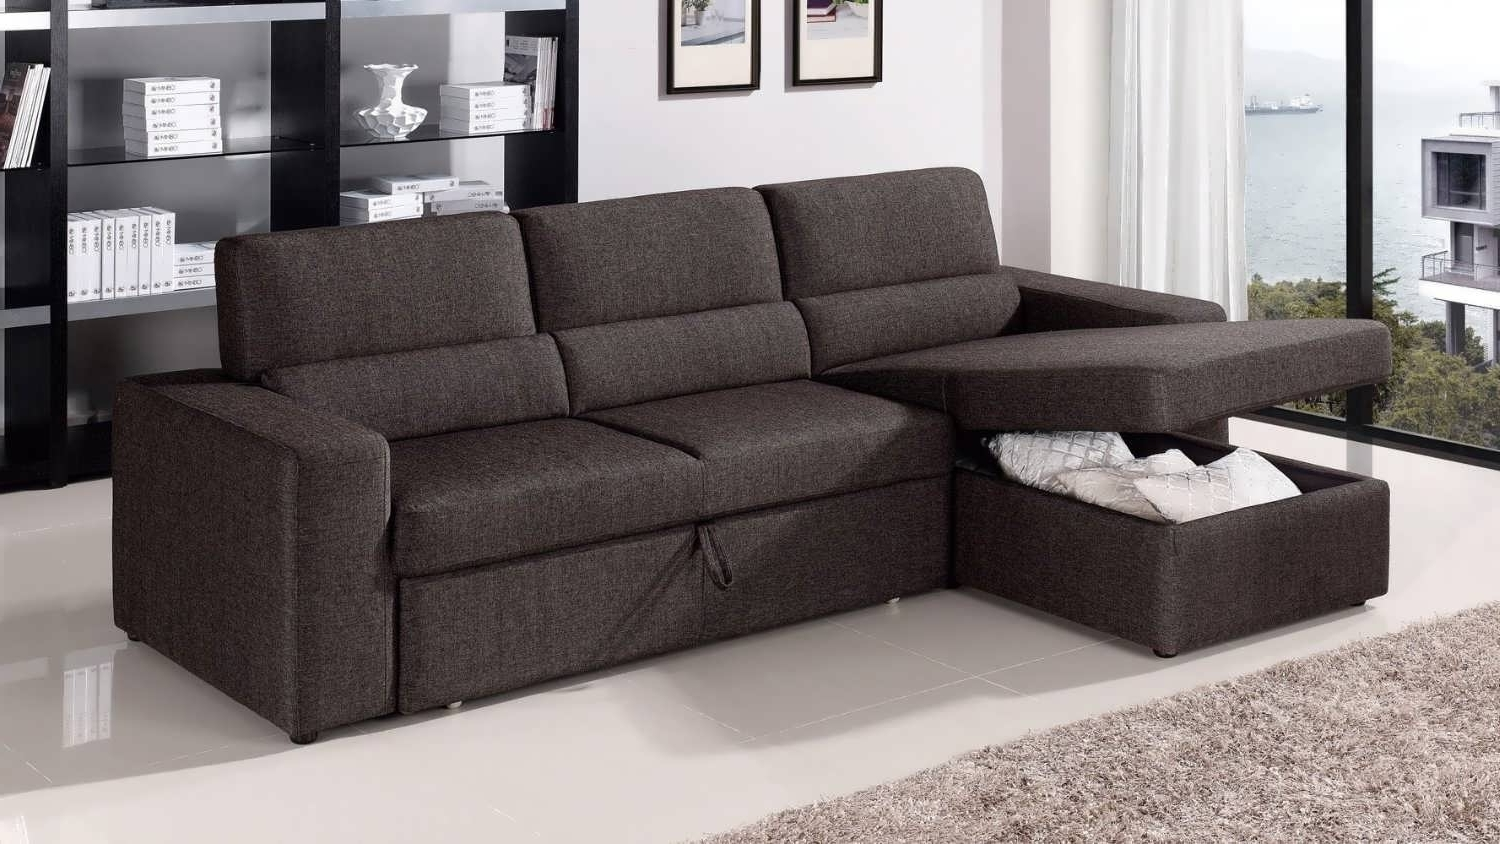 Well Known Sleeper Sectionals With Chaise Inside Sofa : Leather Sectional Sleeper Sofa Affordable Sectionals  (View 2 of 15)